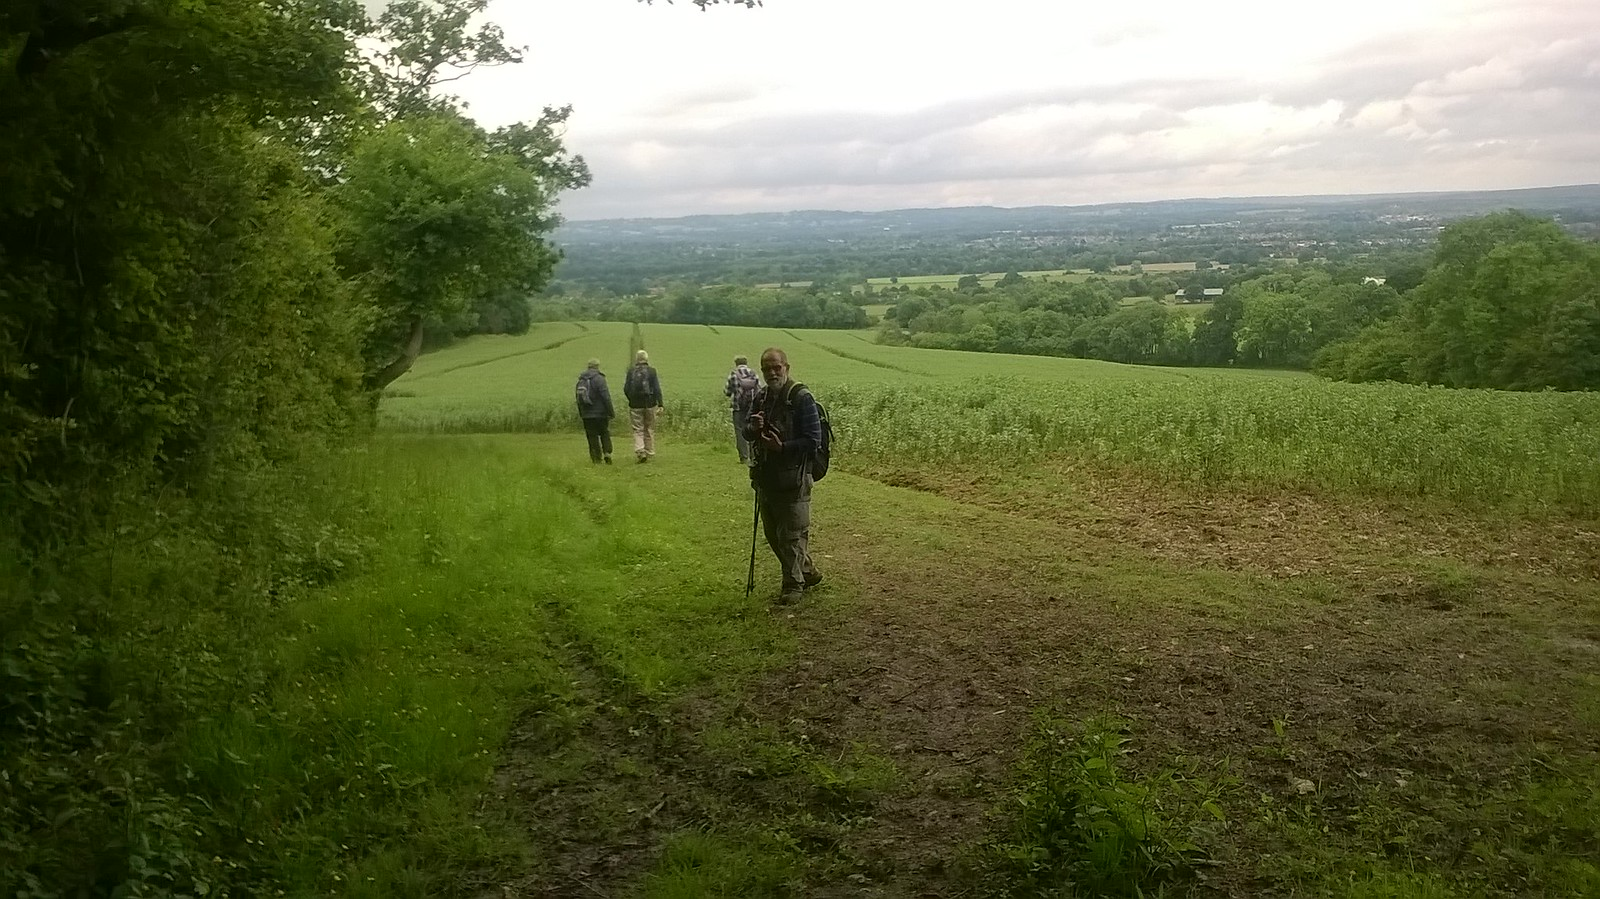 Descent Down to Hildenborough